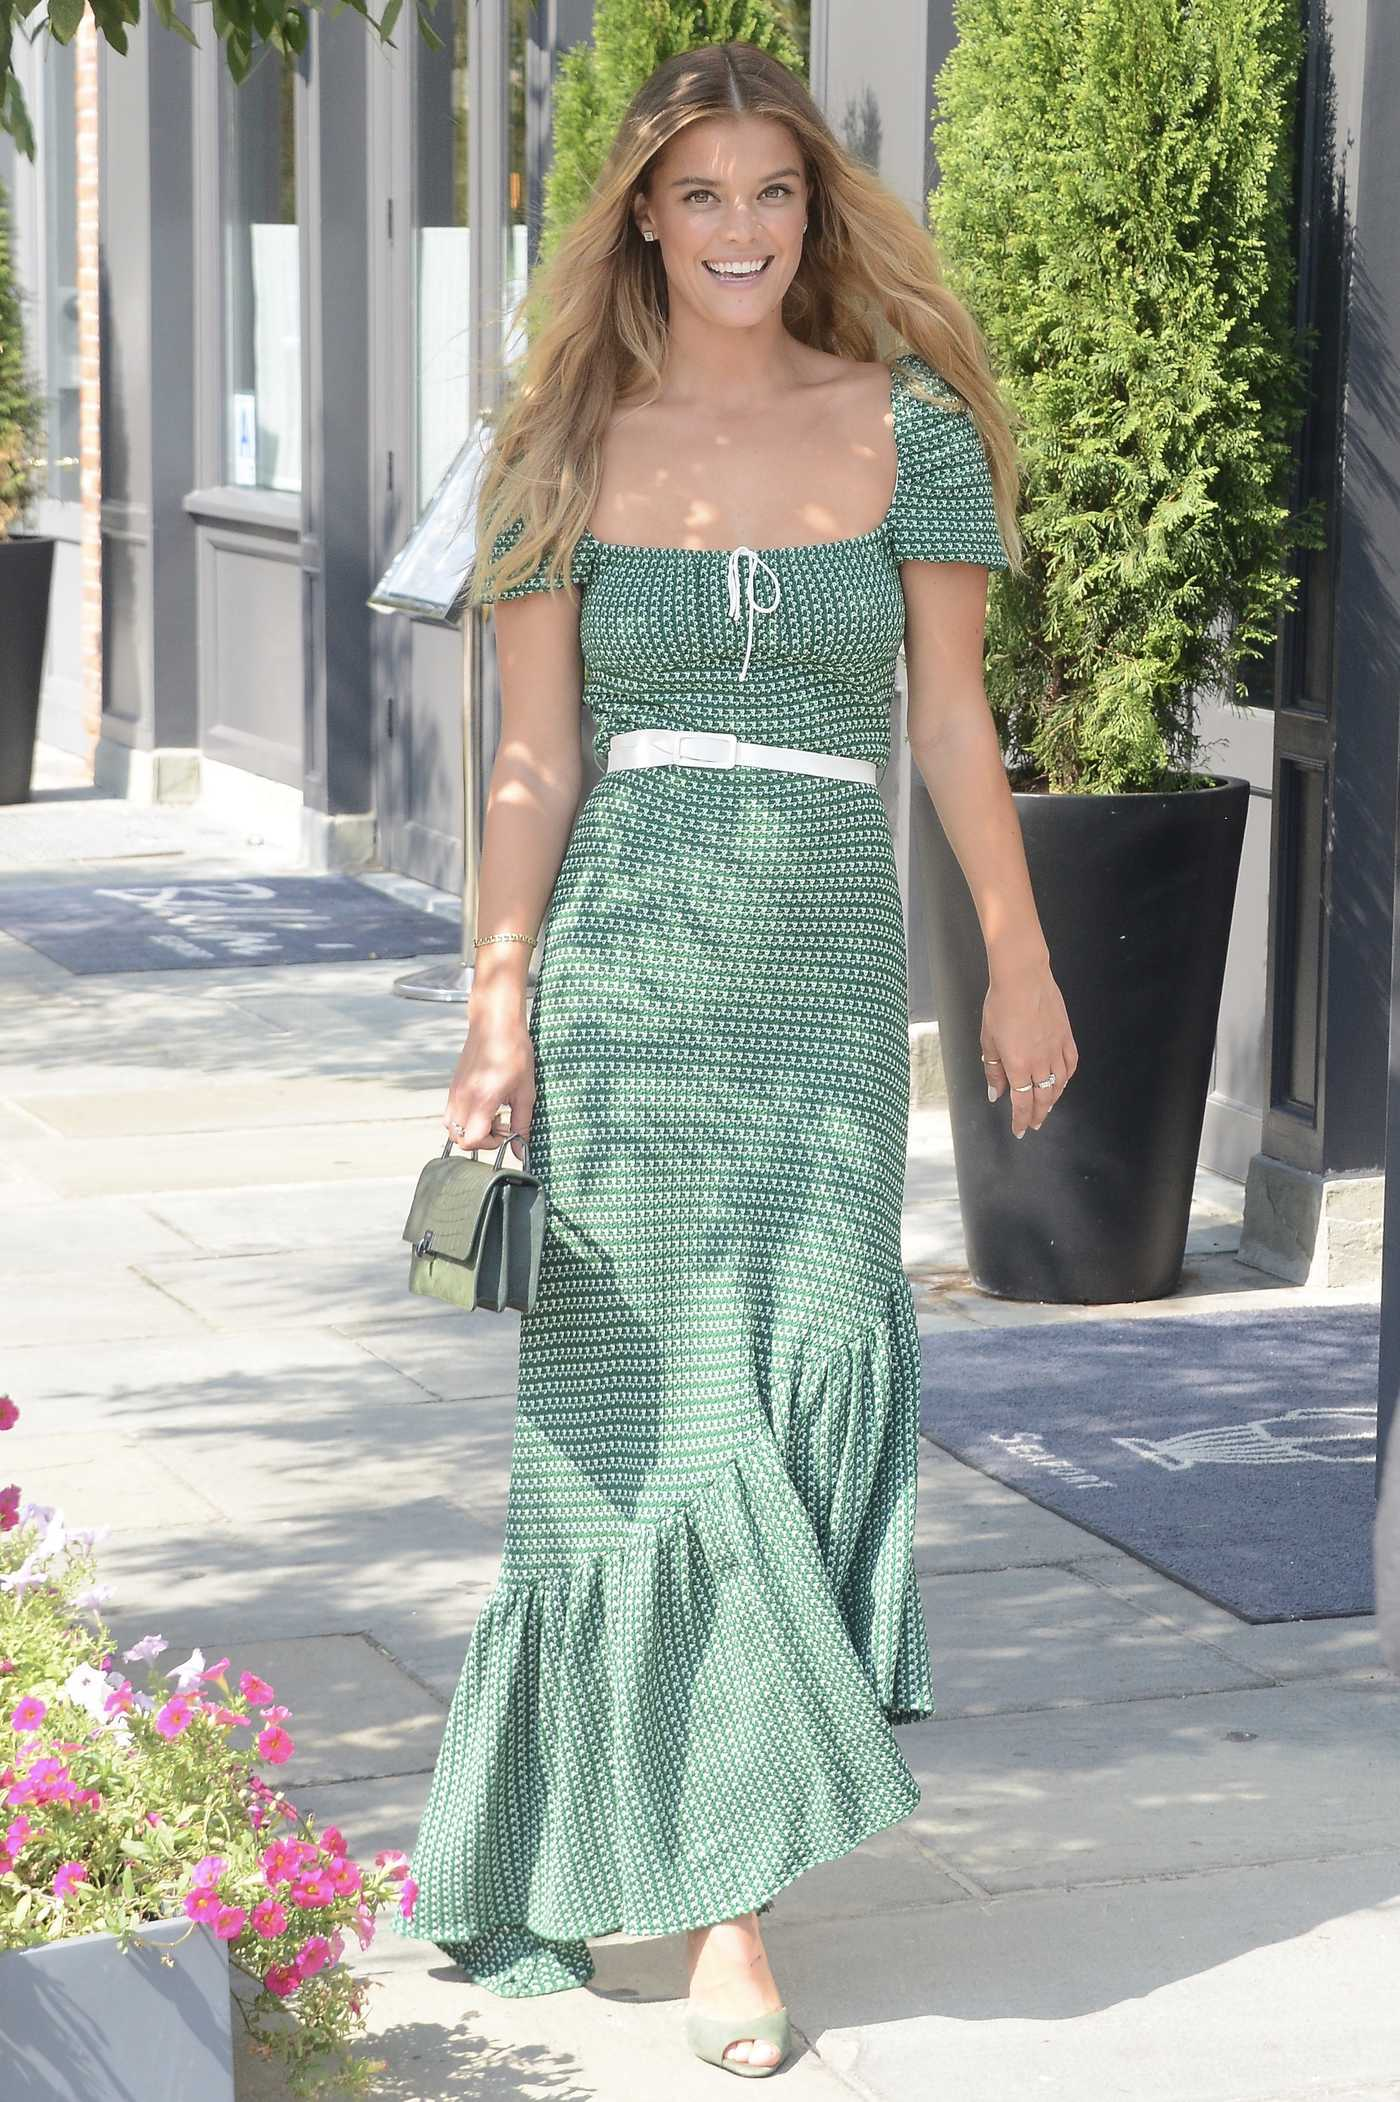 Nina Agdal in a Long Green Dress Was Seen Out in New York City 09/06/2018